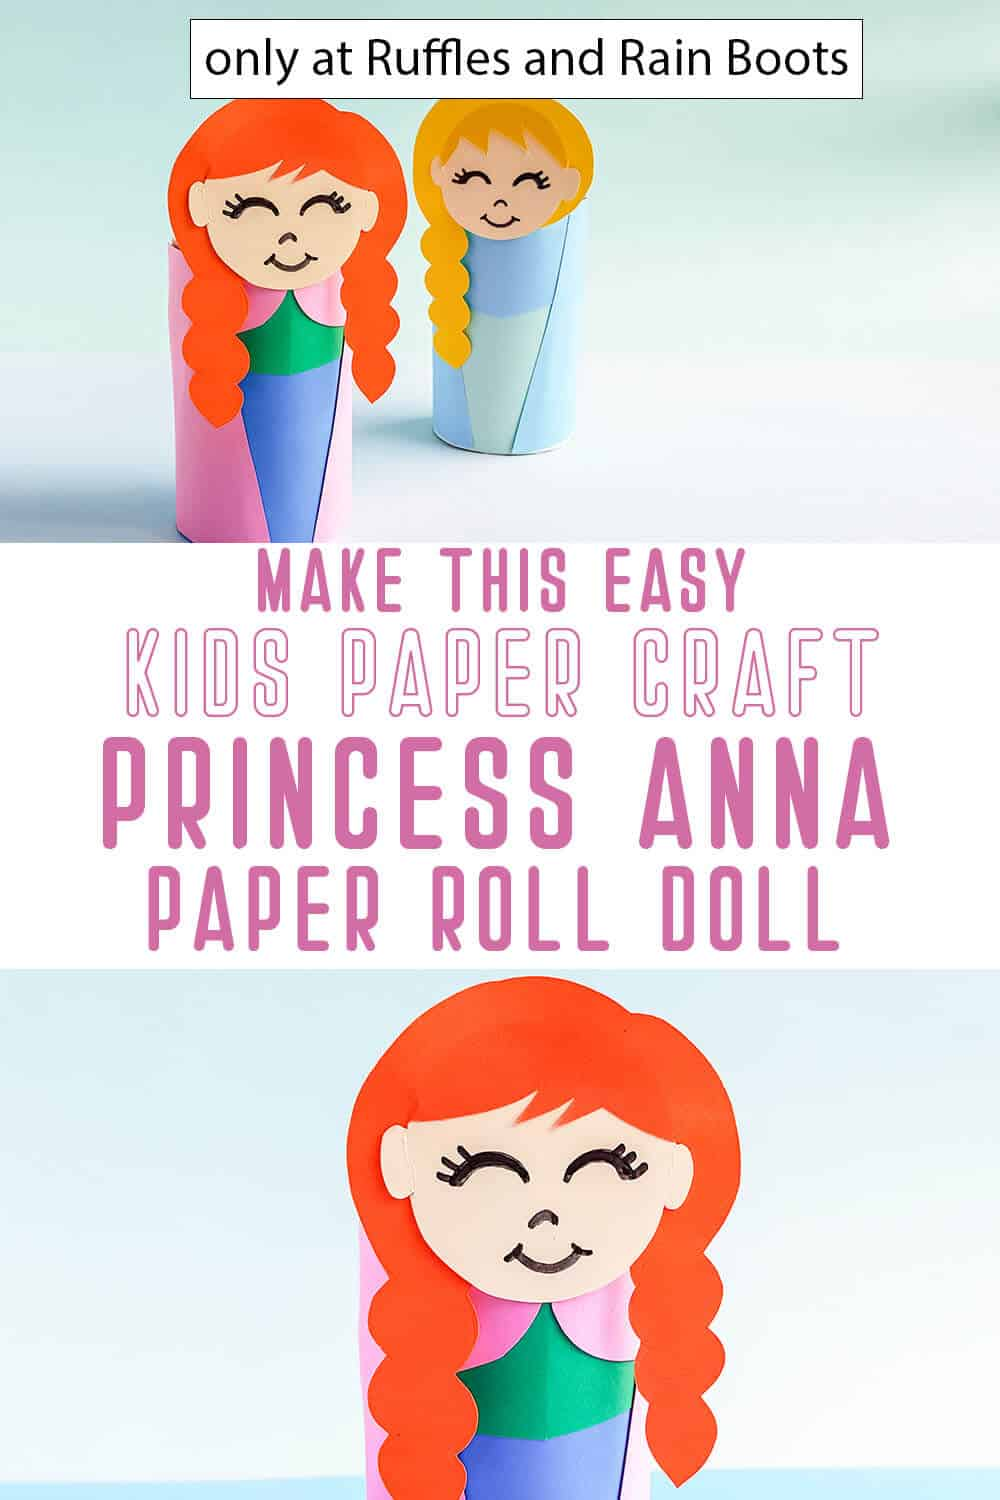 photo collage of frozen princess anna paper roll doll with text which reads make this easy kids paper craft princess anna paper roll doll